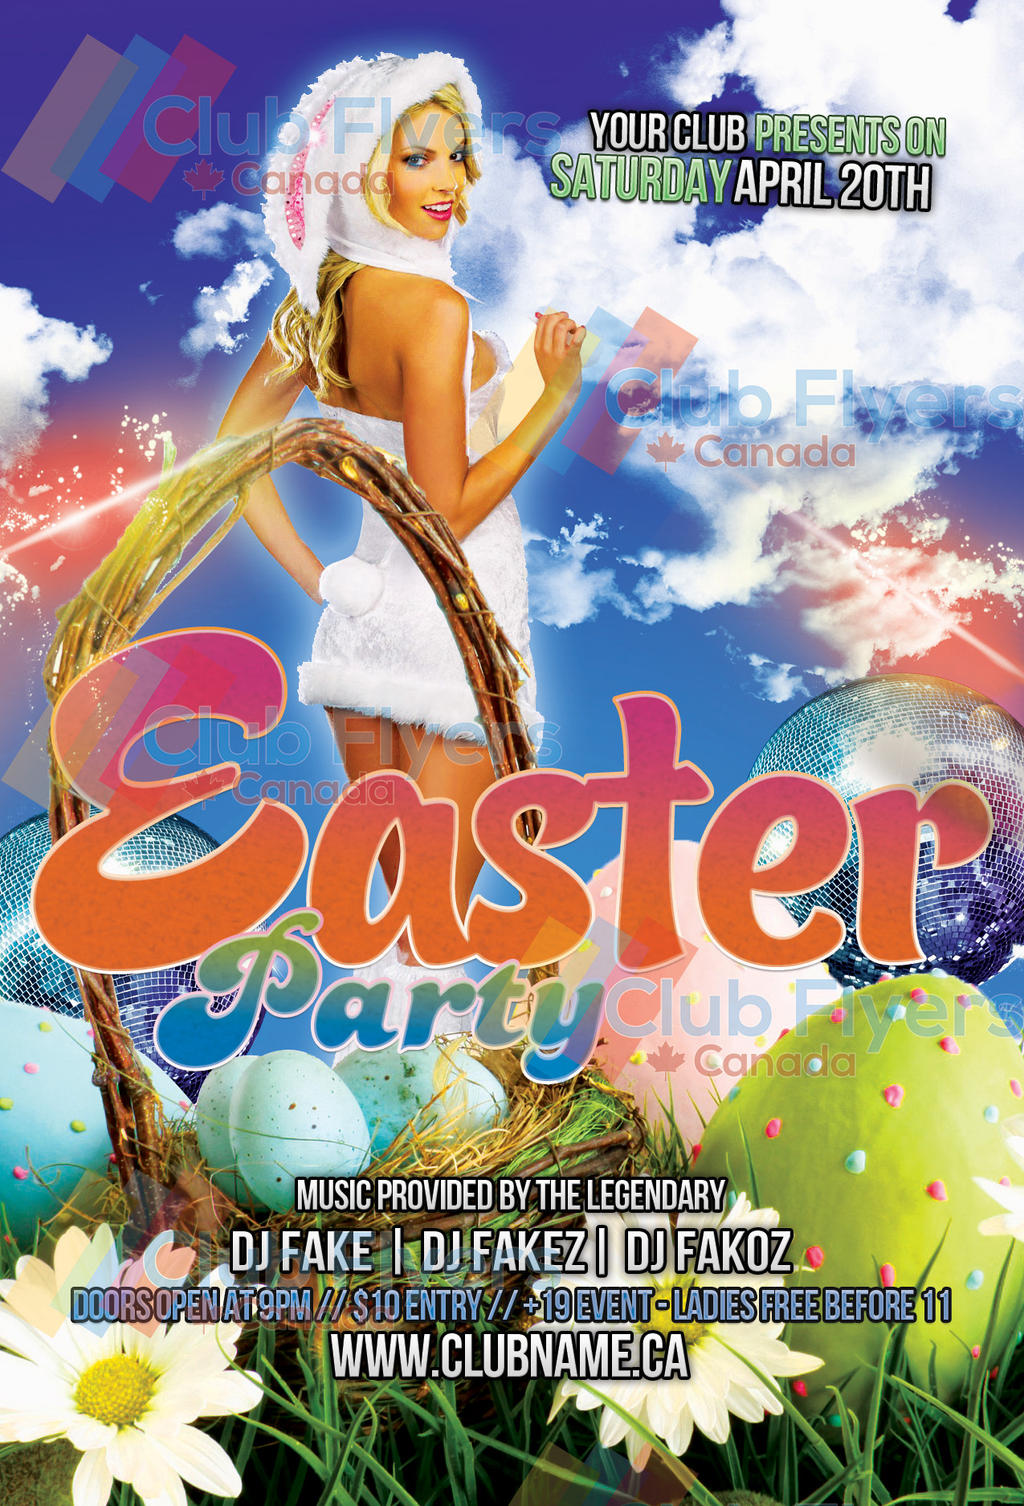 Free easter nightclub party flyer template by clubflyerscanada